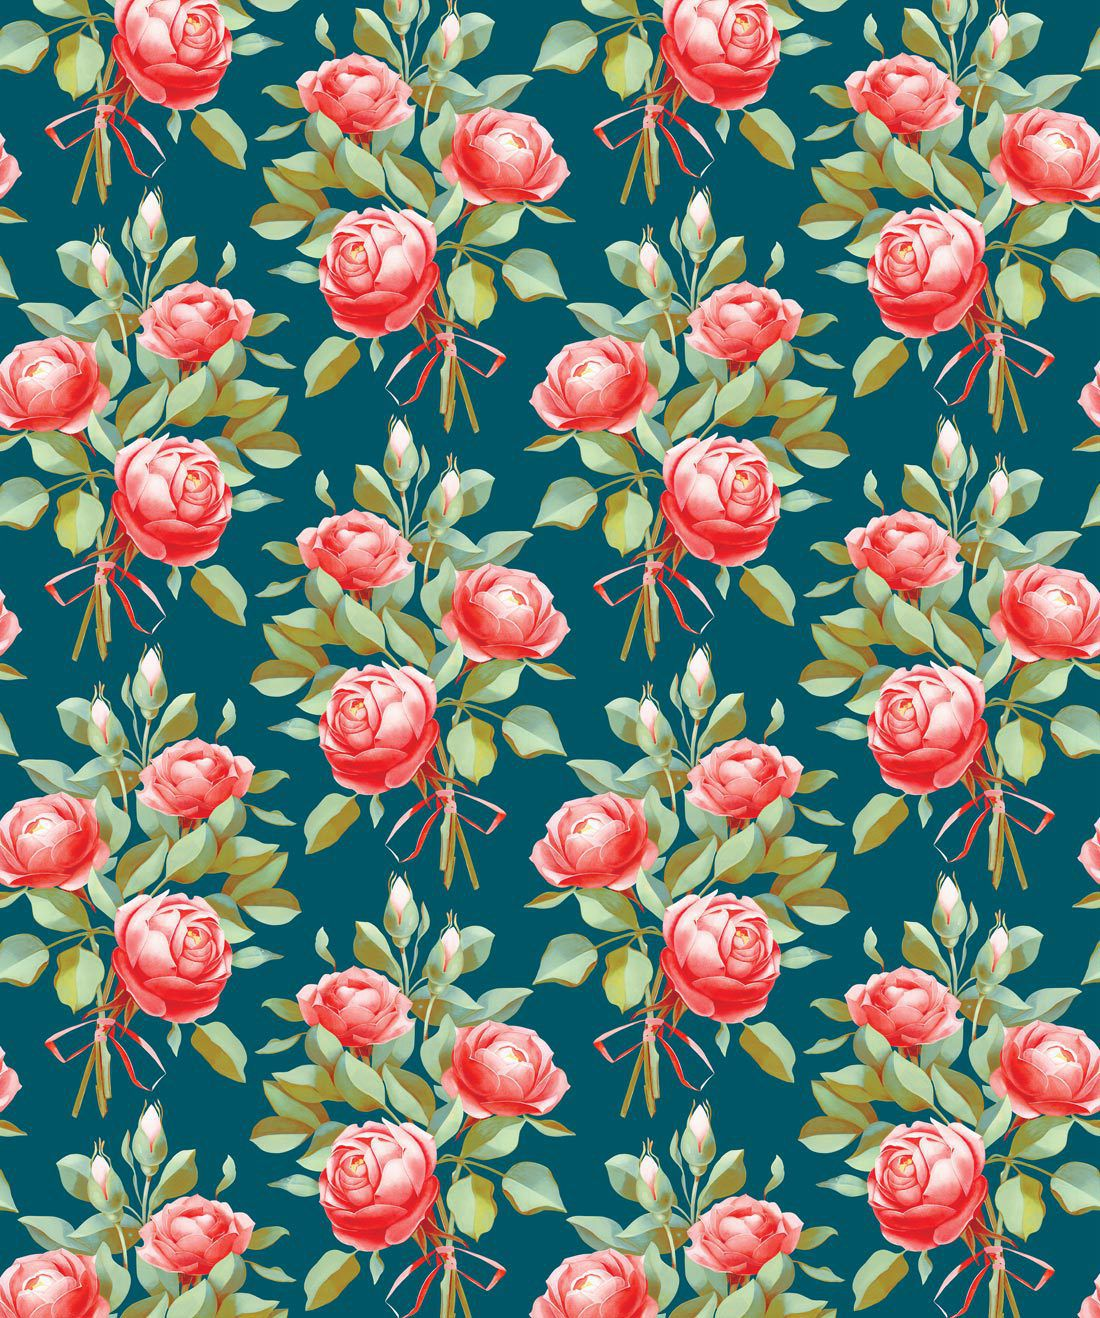 Governors Rose Wallpaper